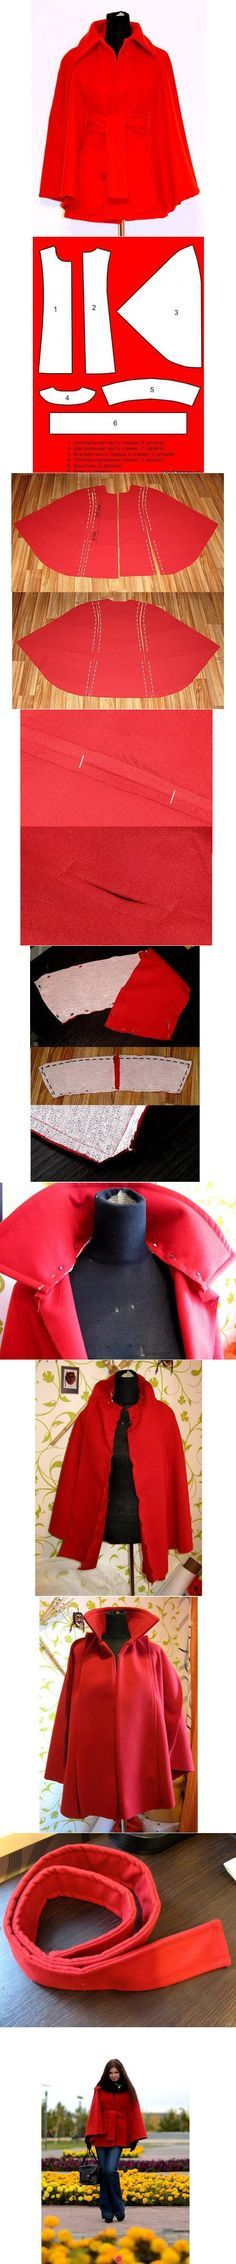 FREE Cape Sewing Pattern and Picture Tutorial                                                                                                                                                                                 More